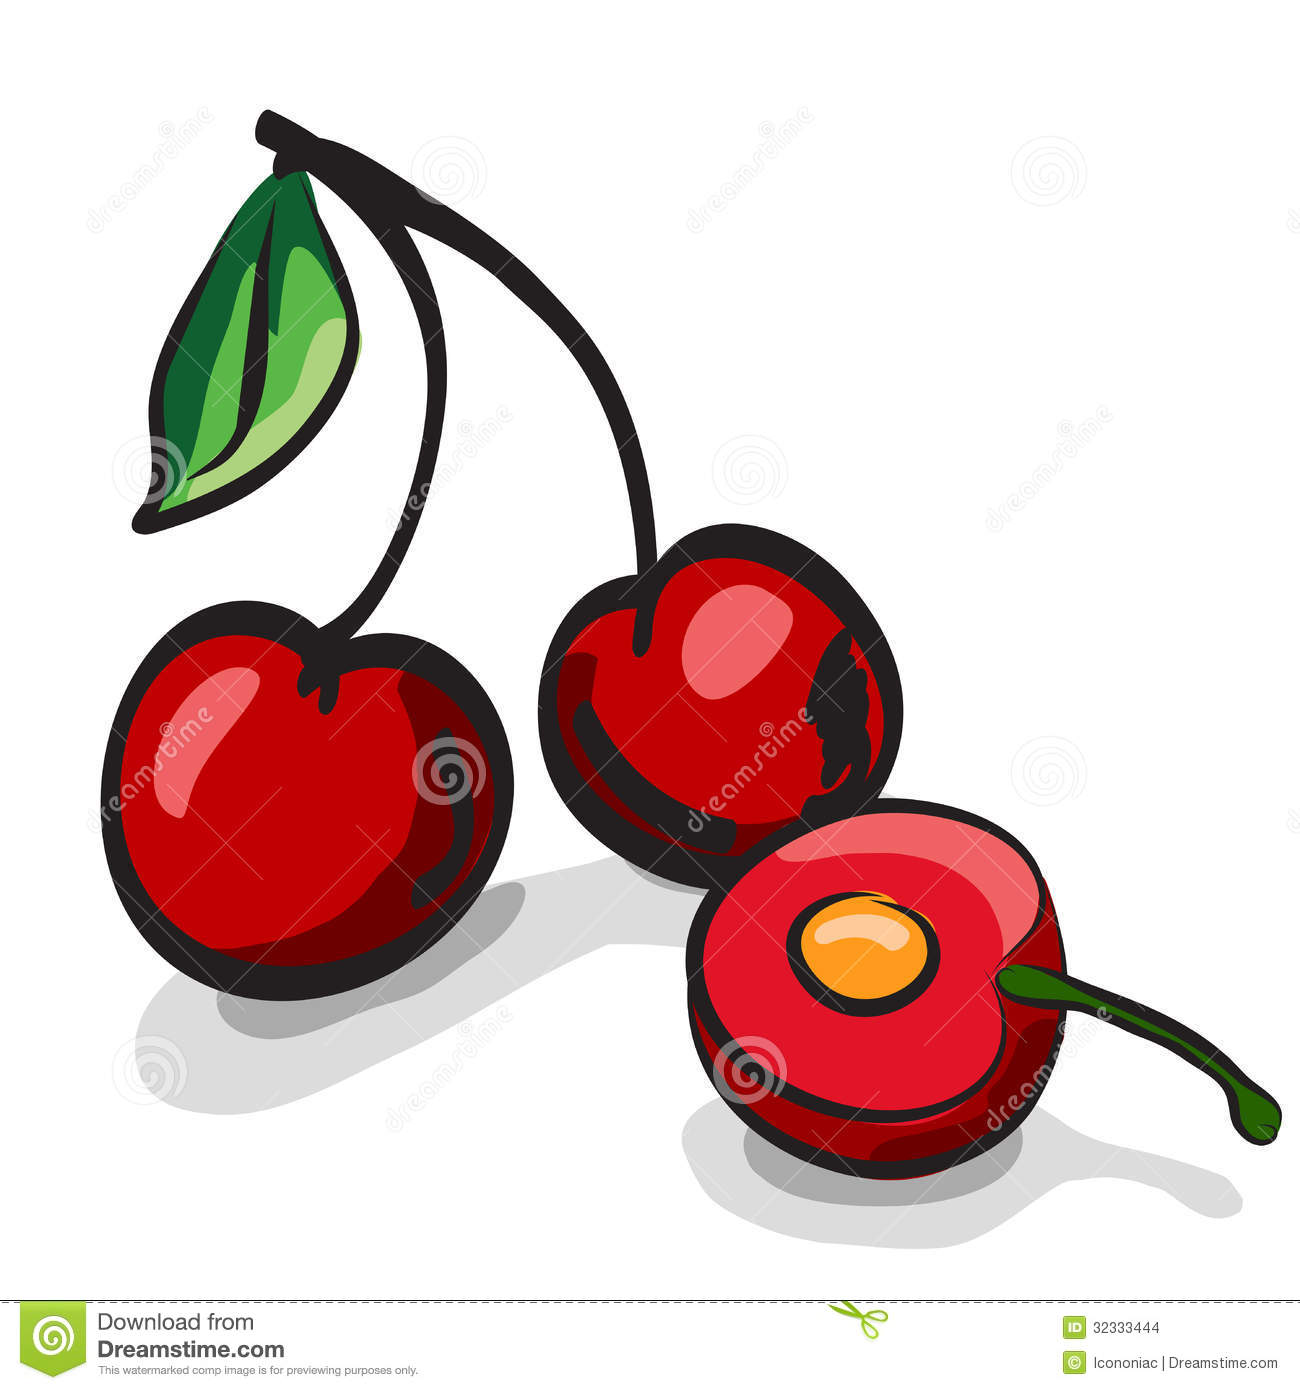 Ensemble de dessin de croquis de fruits de cerise illustration stock illustration du nutrition - Dessin cerise ...